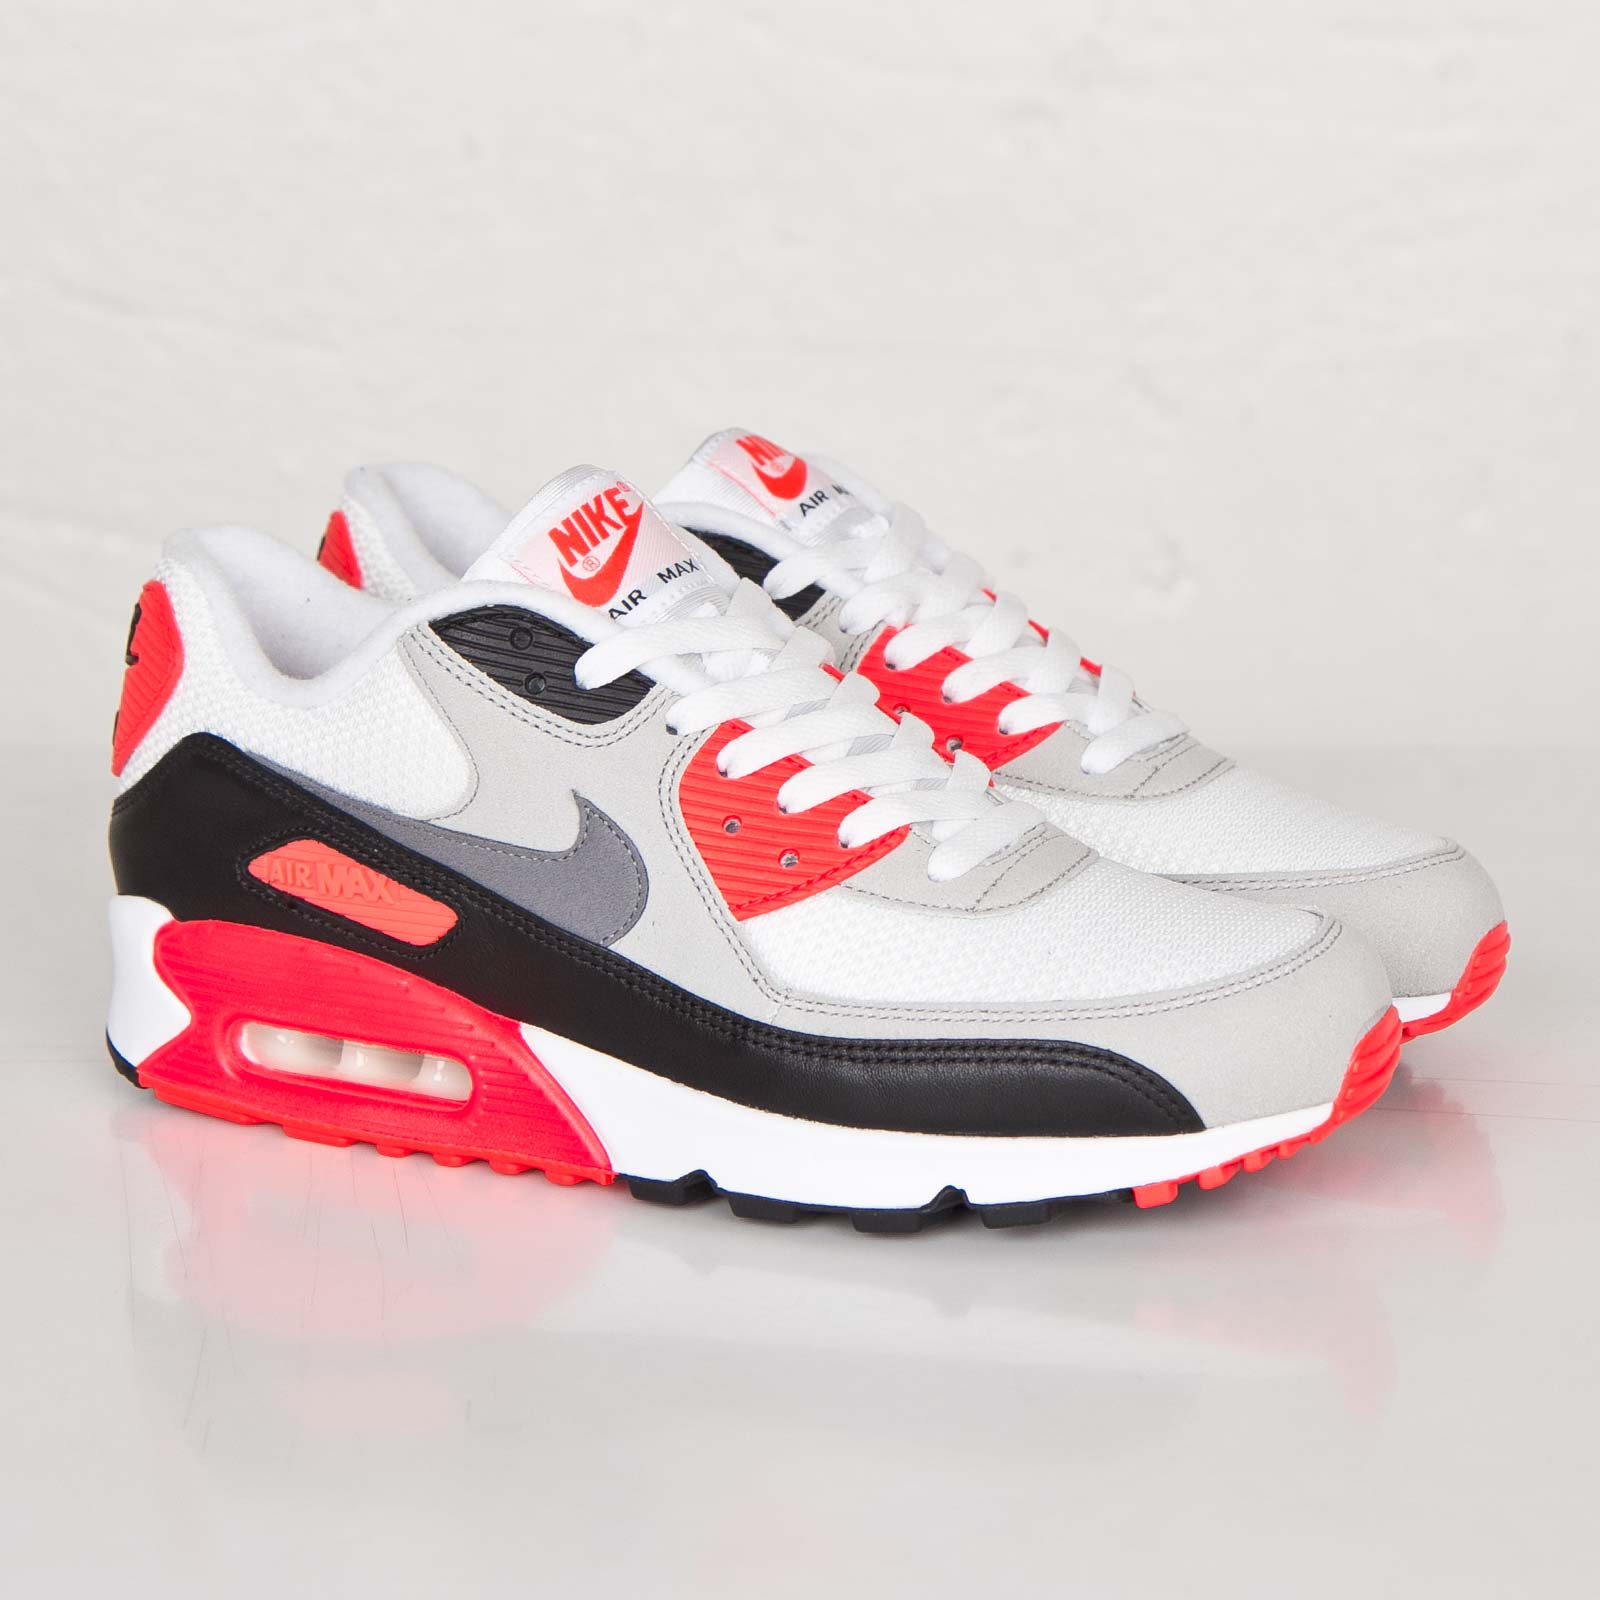 Nike Air Max 90 Infrared OG Men's